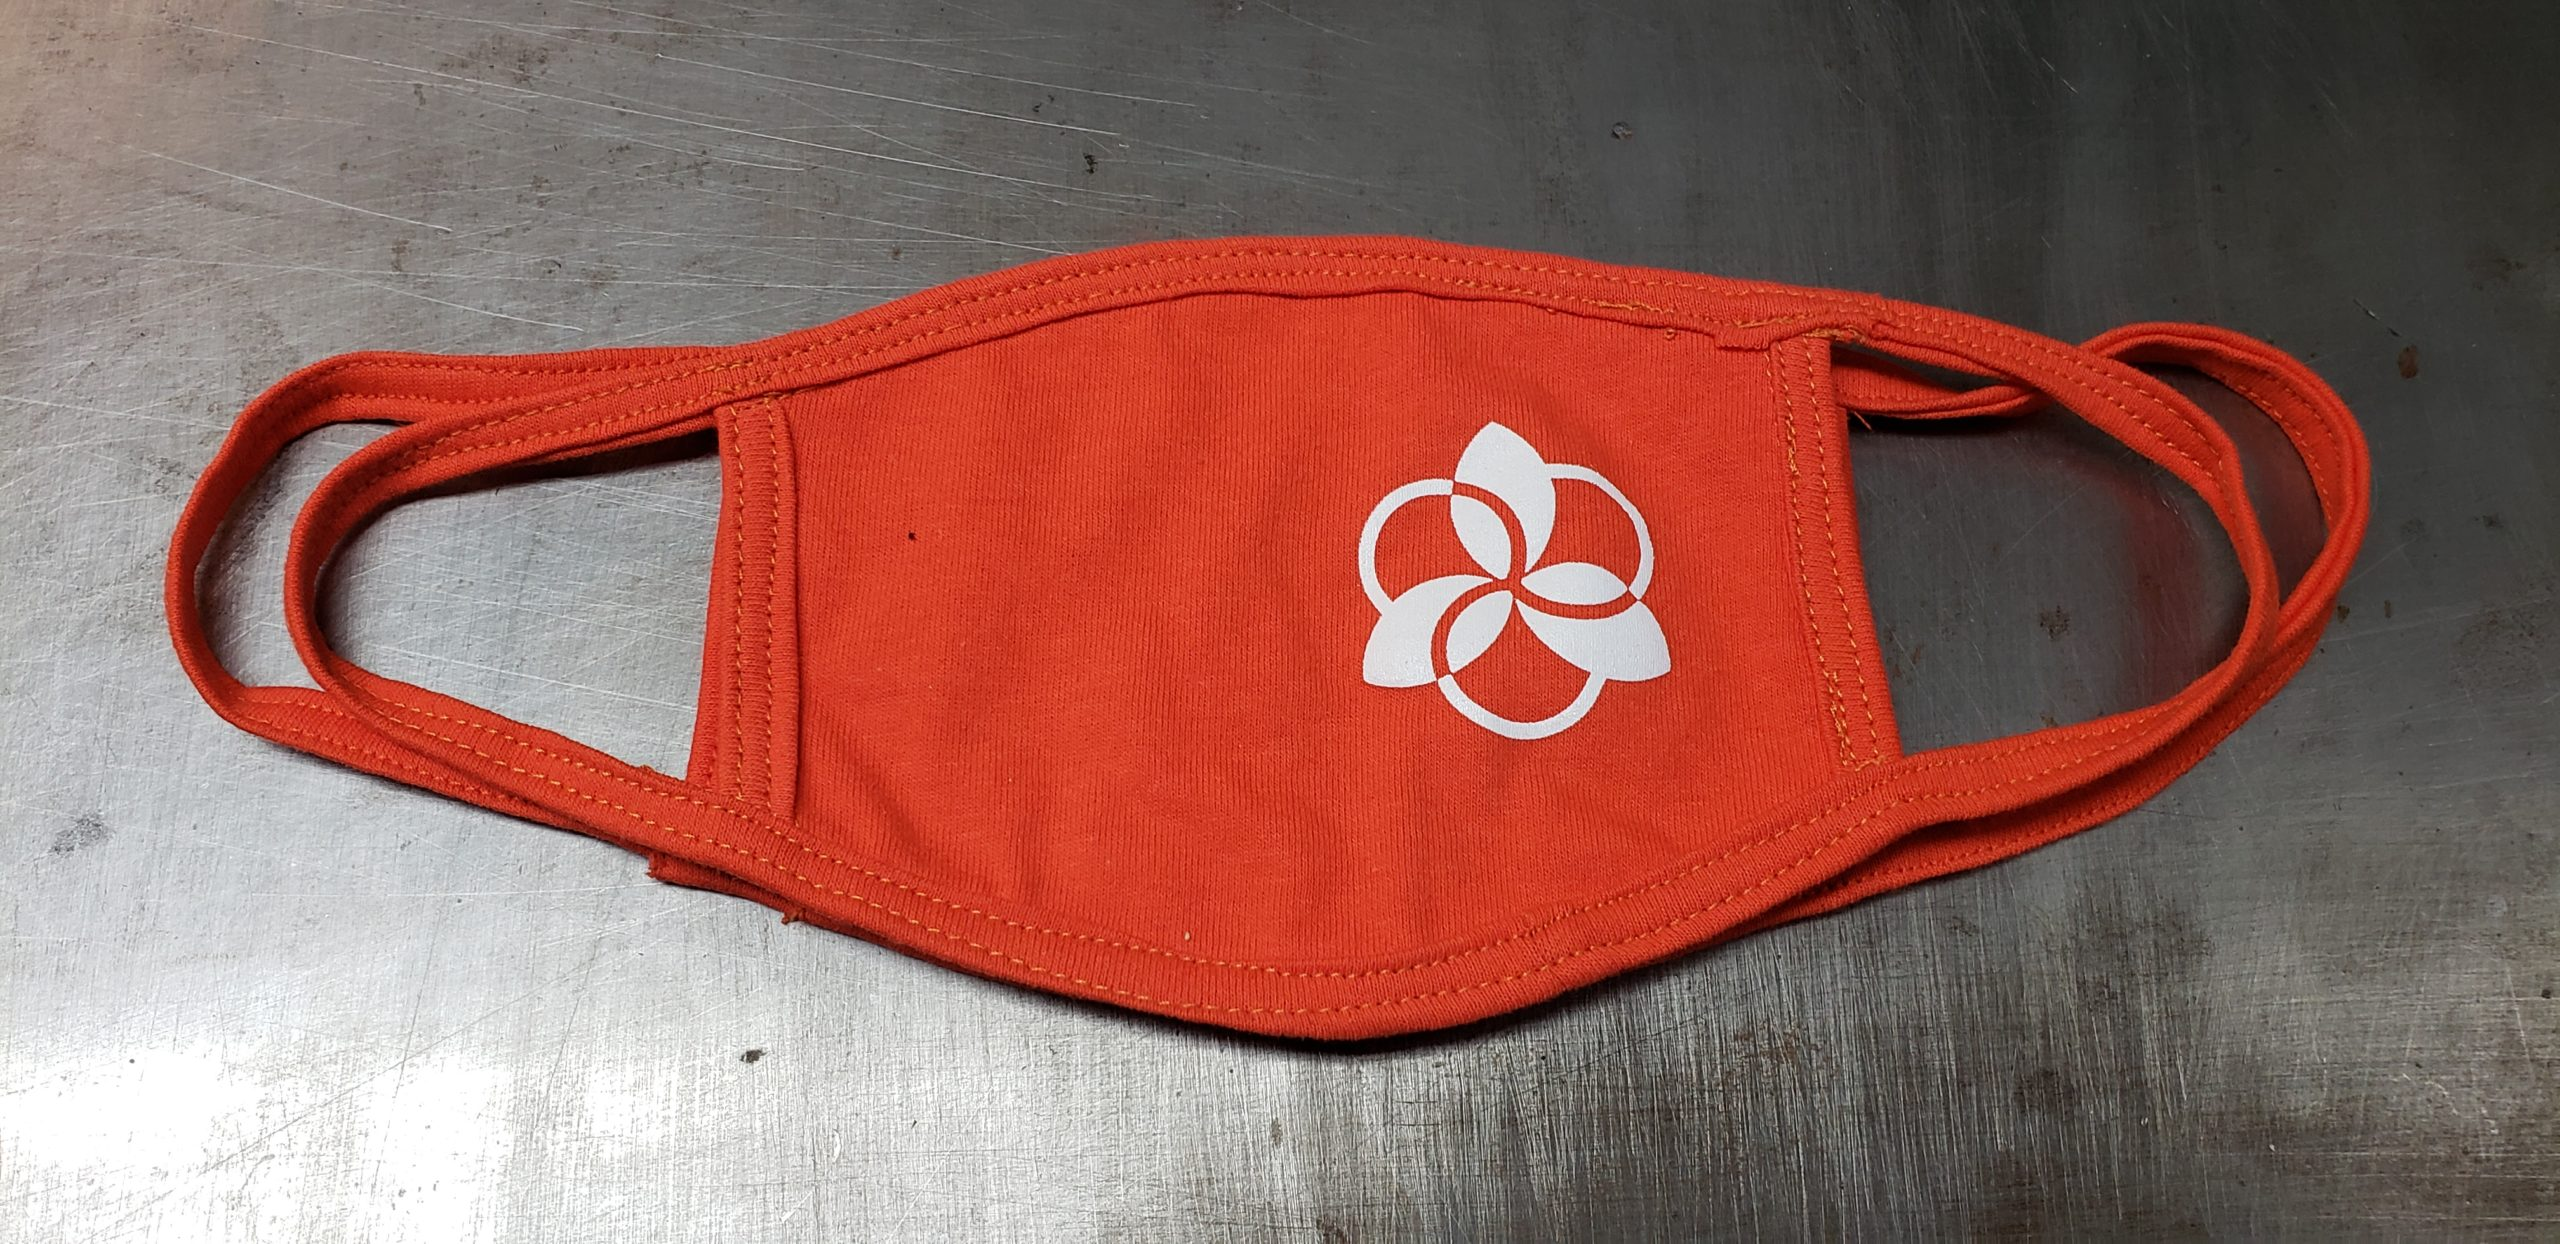 Orange cotton face mask with union screen printed one color design